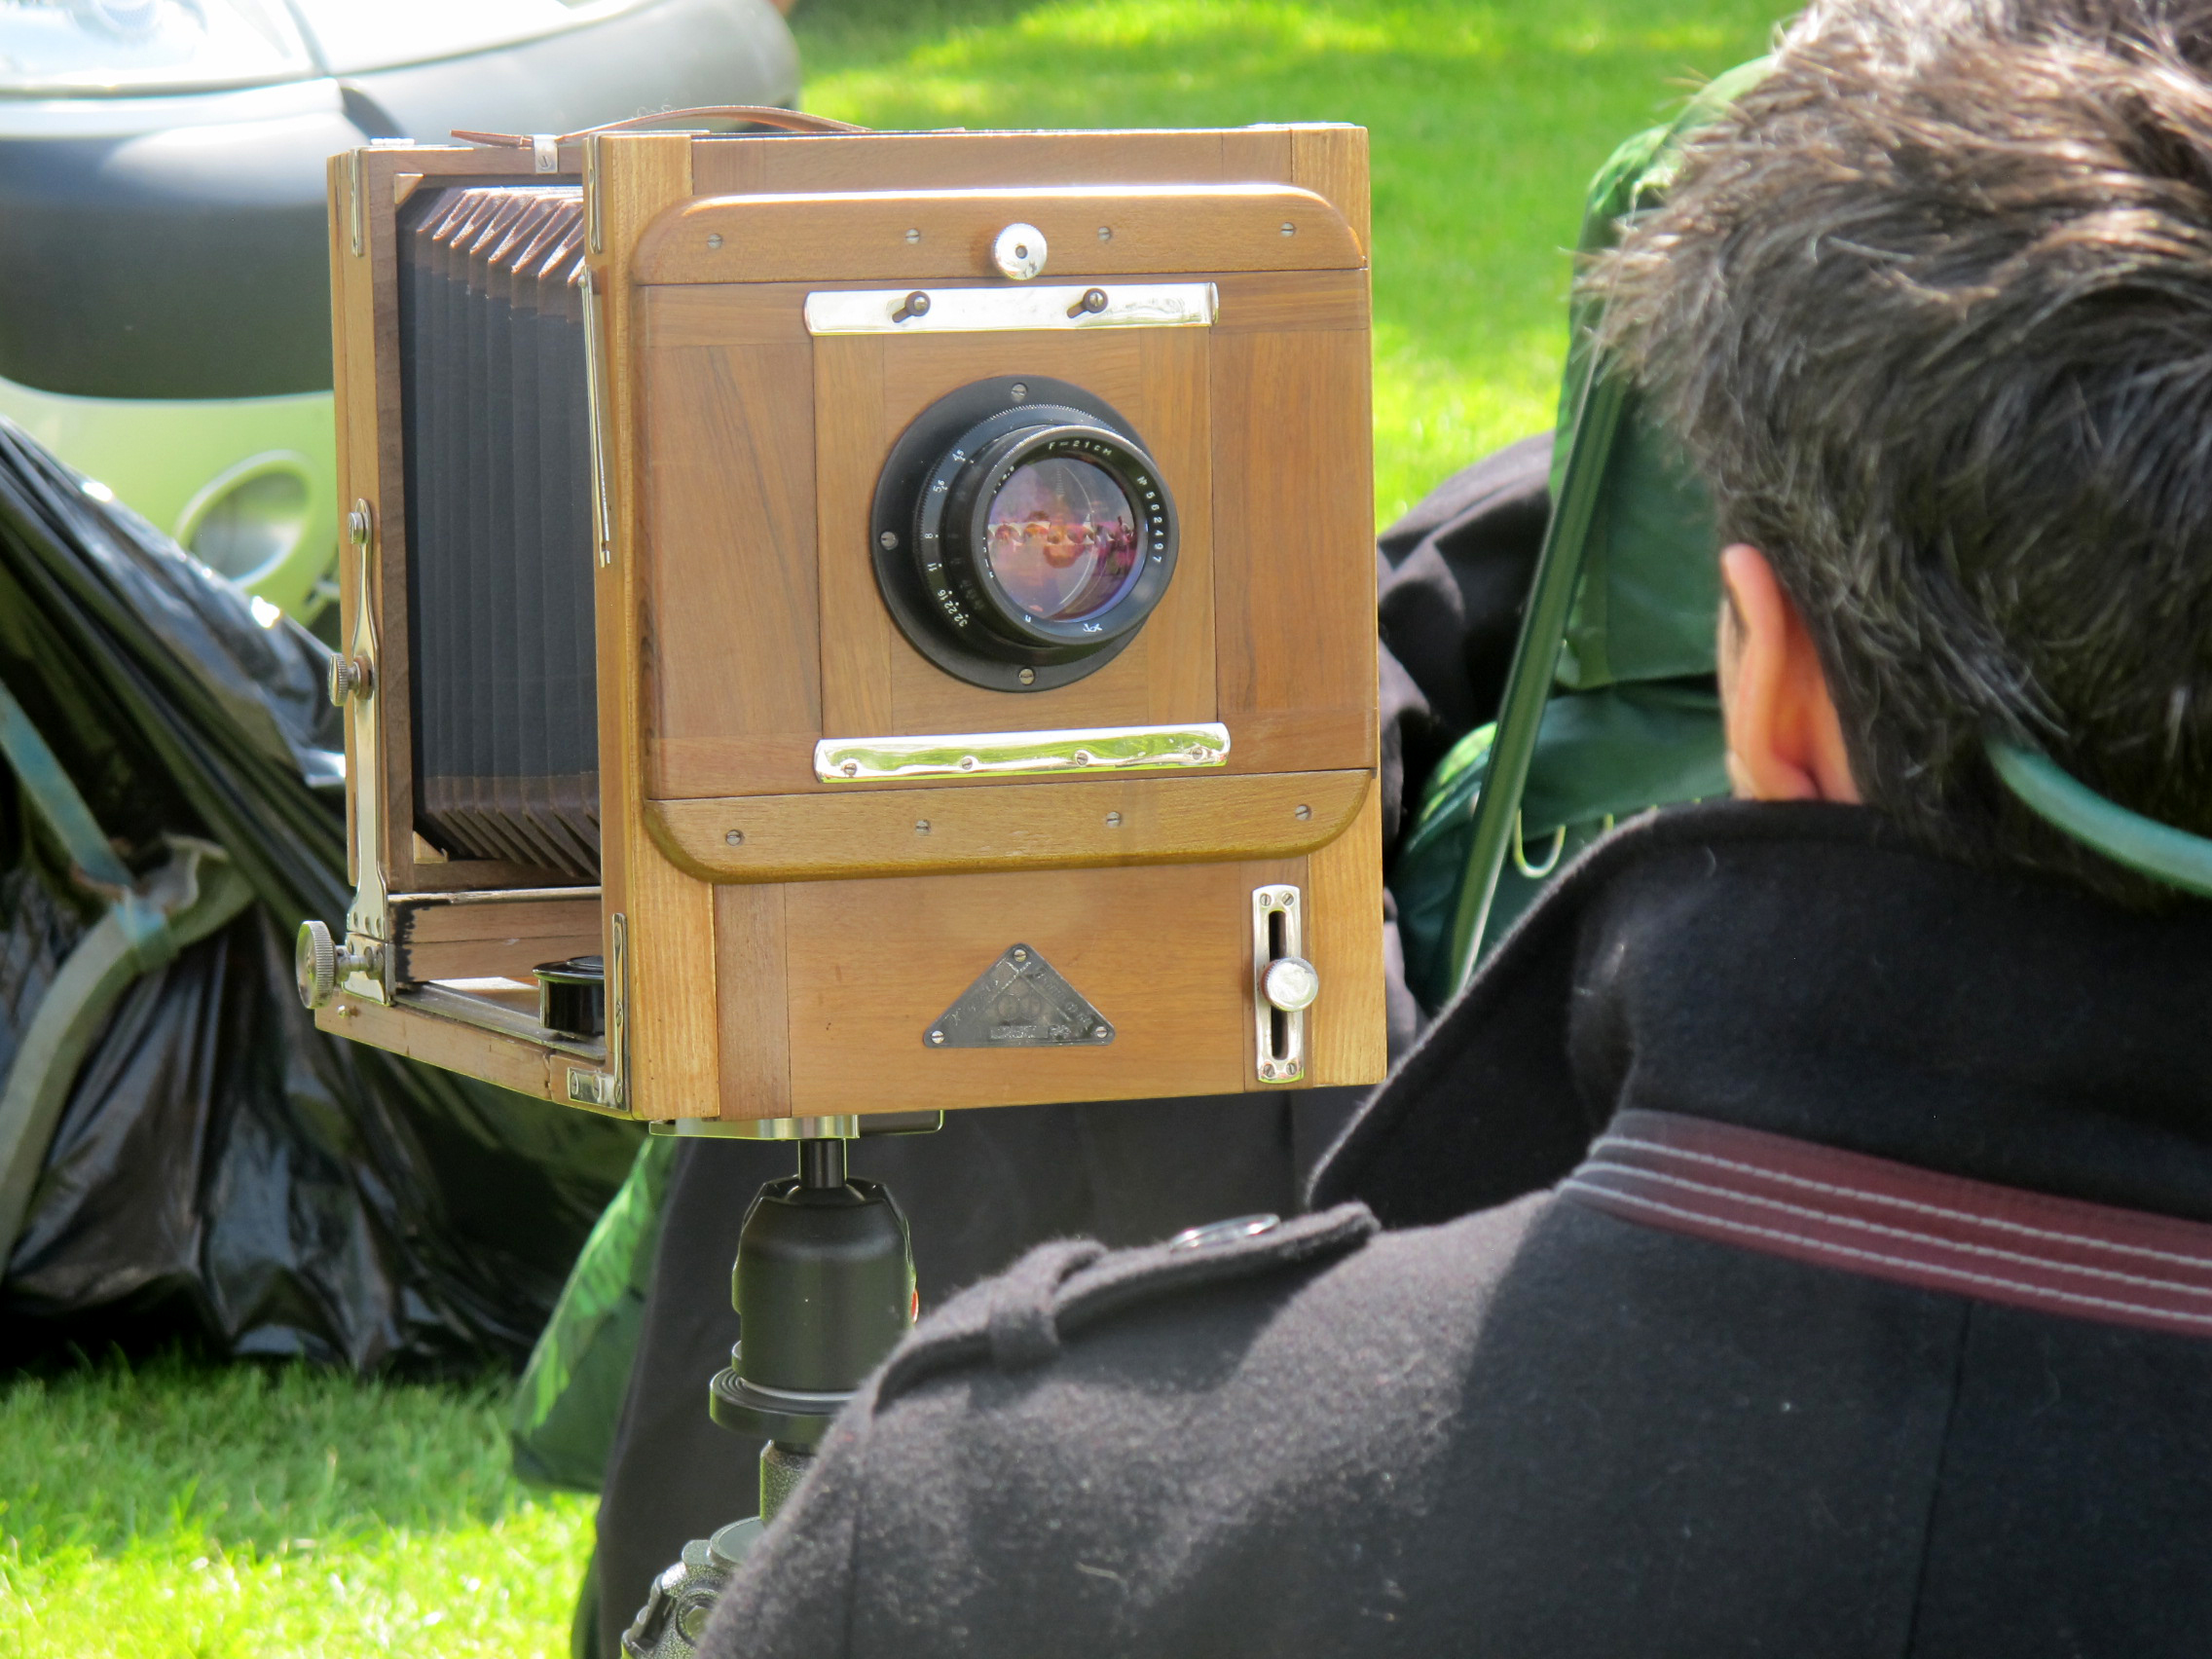 WET-PLATE day (ECW 2014) in Riethoven